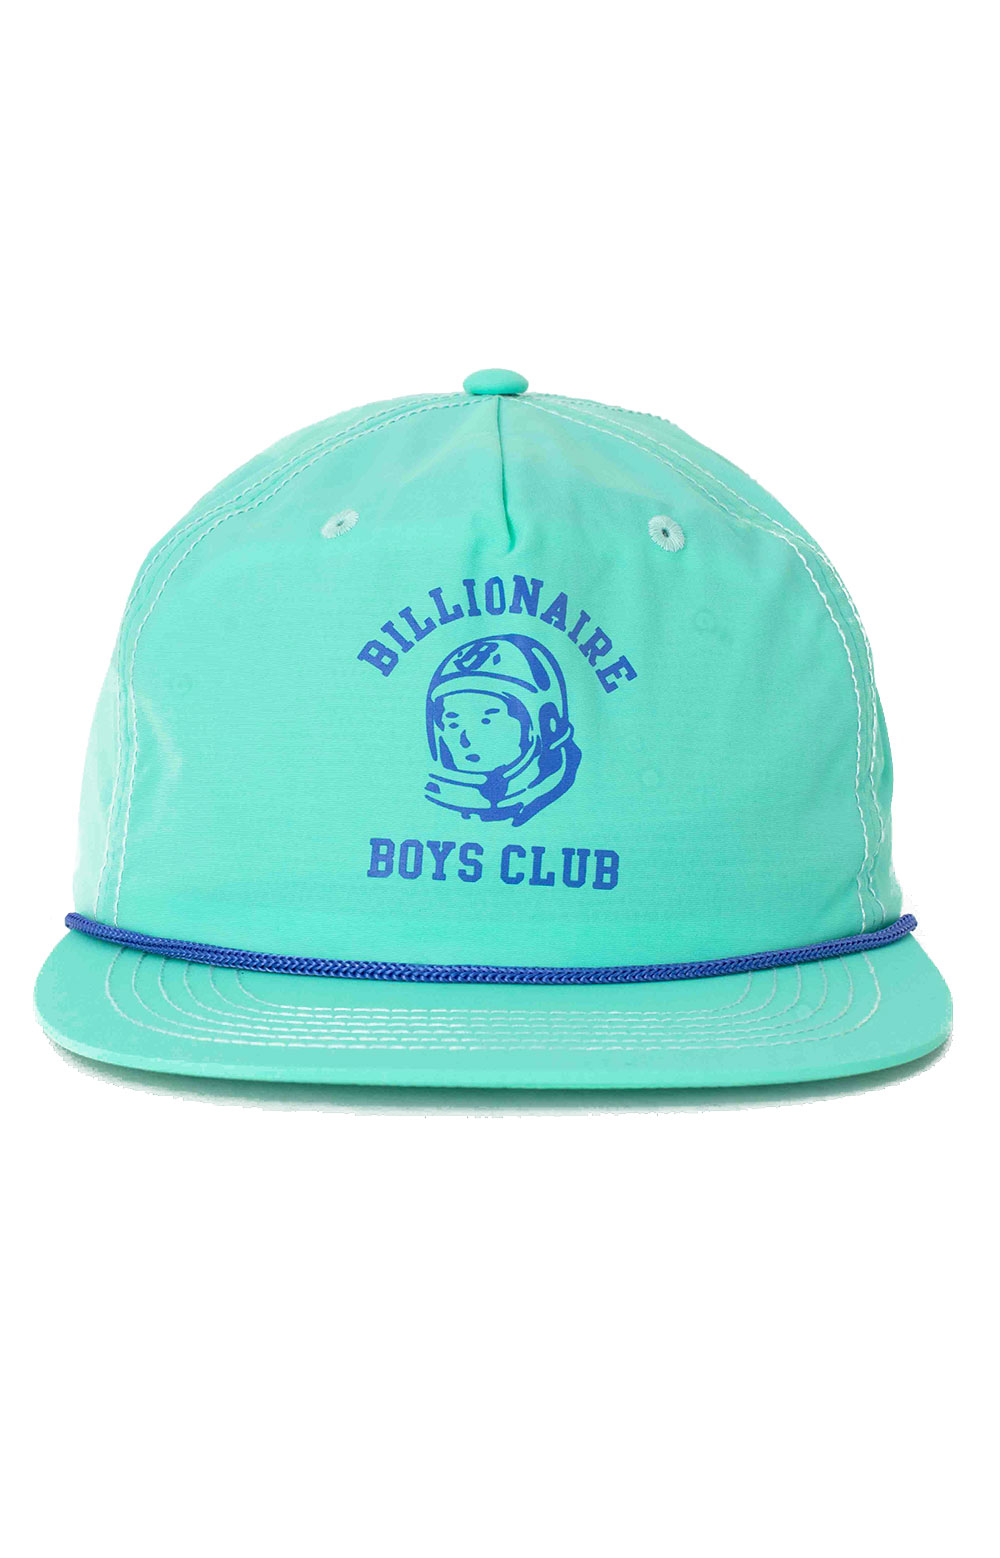 Clubhouse Snap-Back Hat - Spring Bud  2